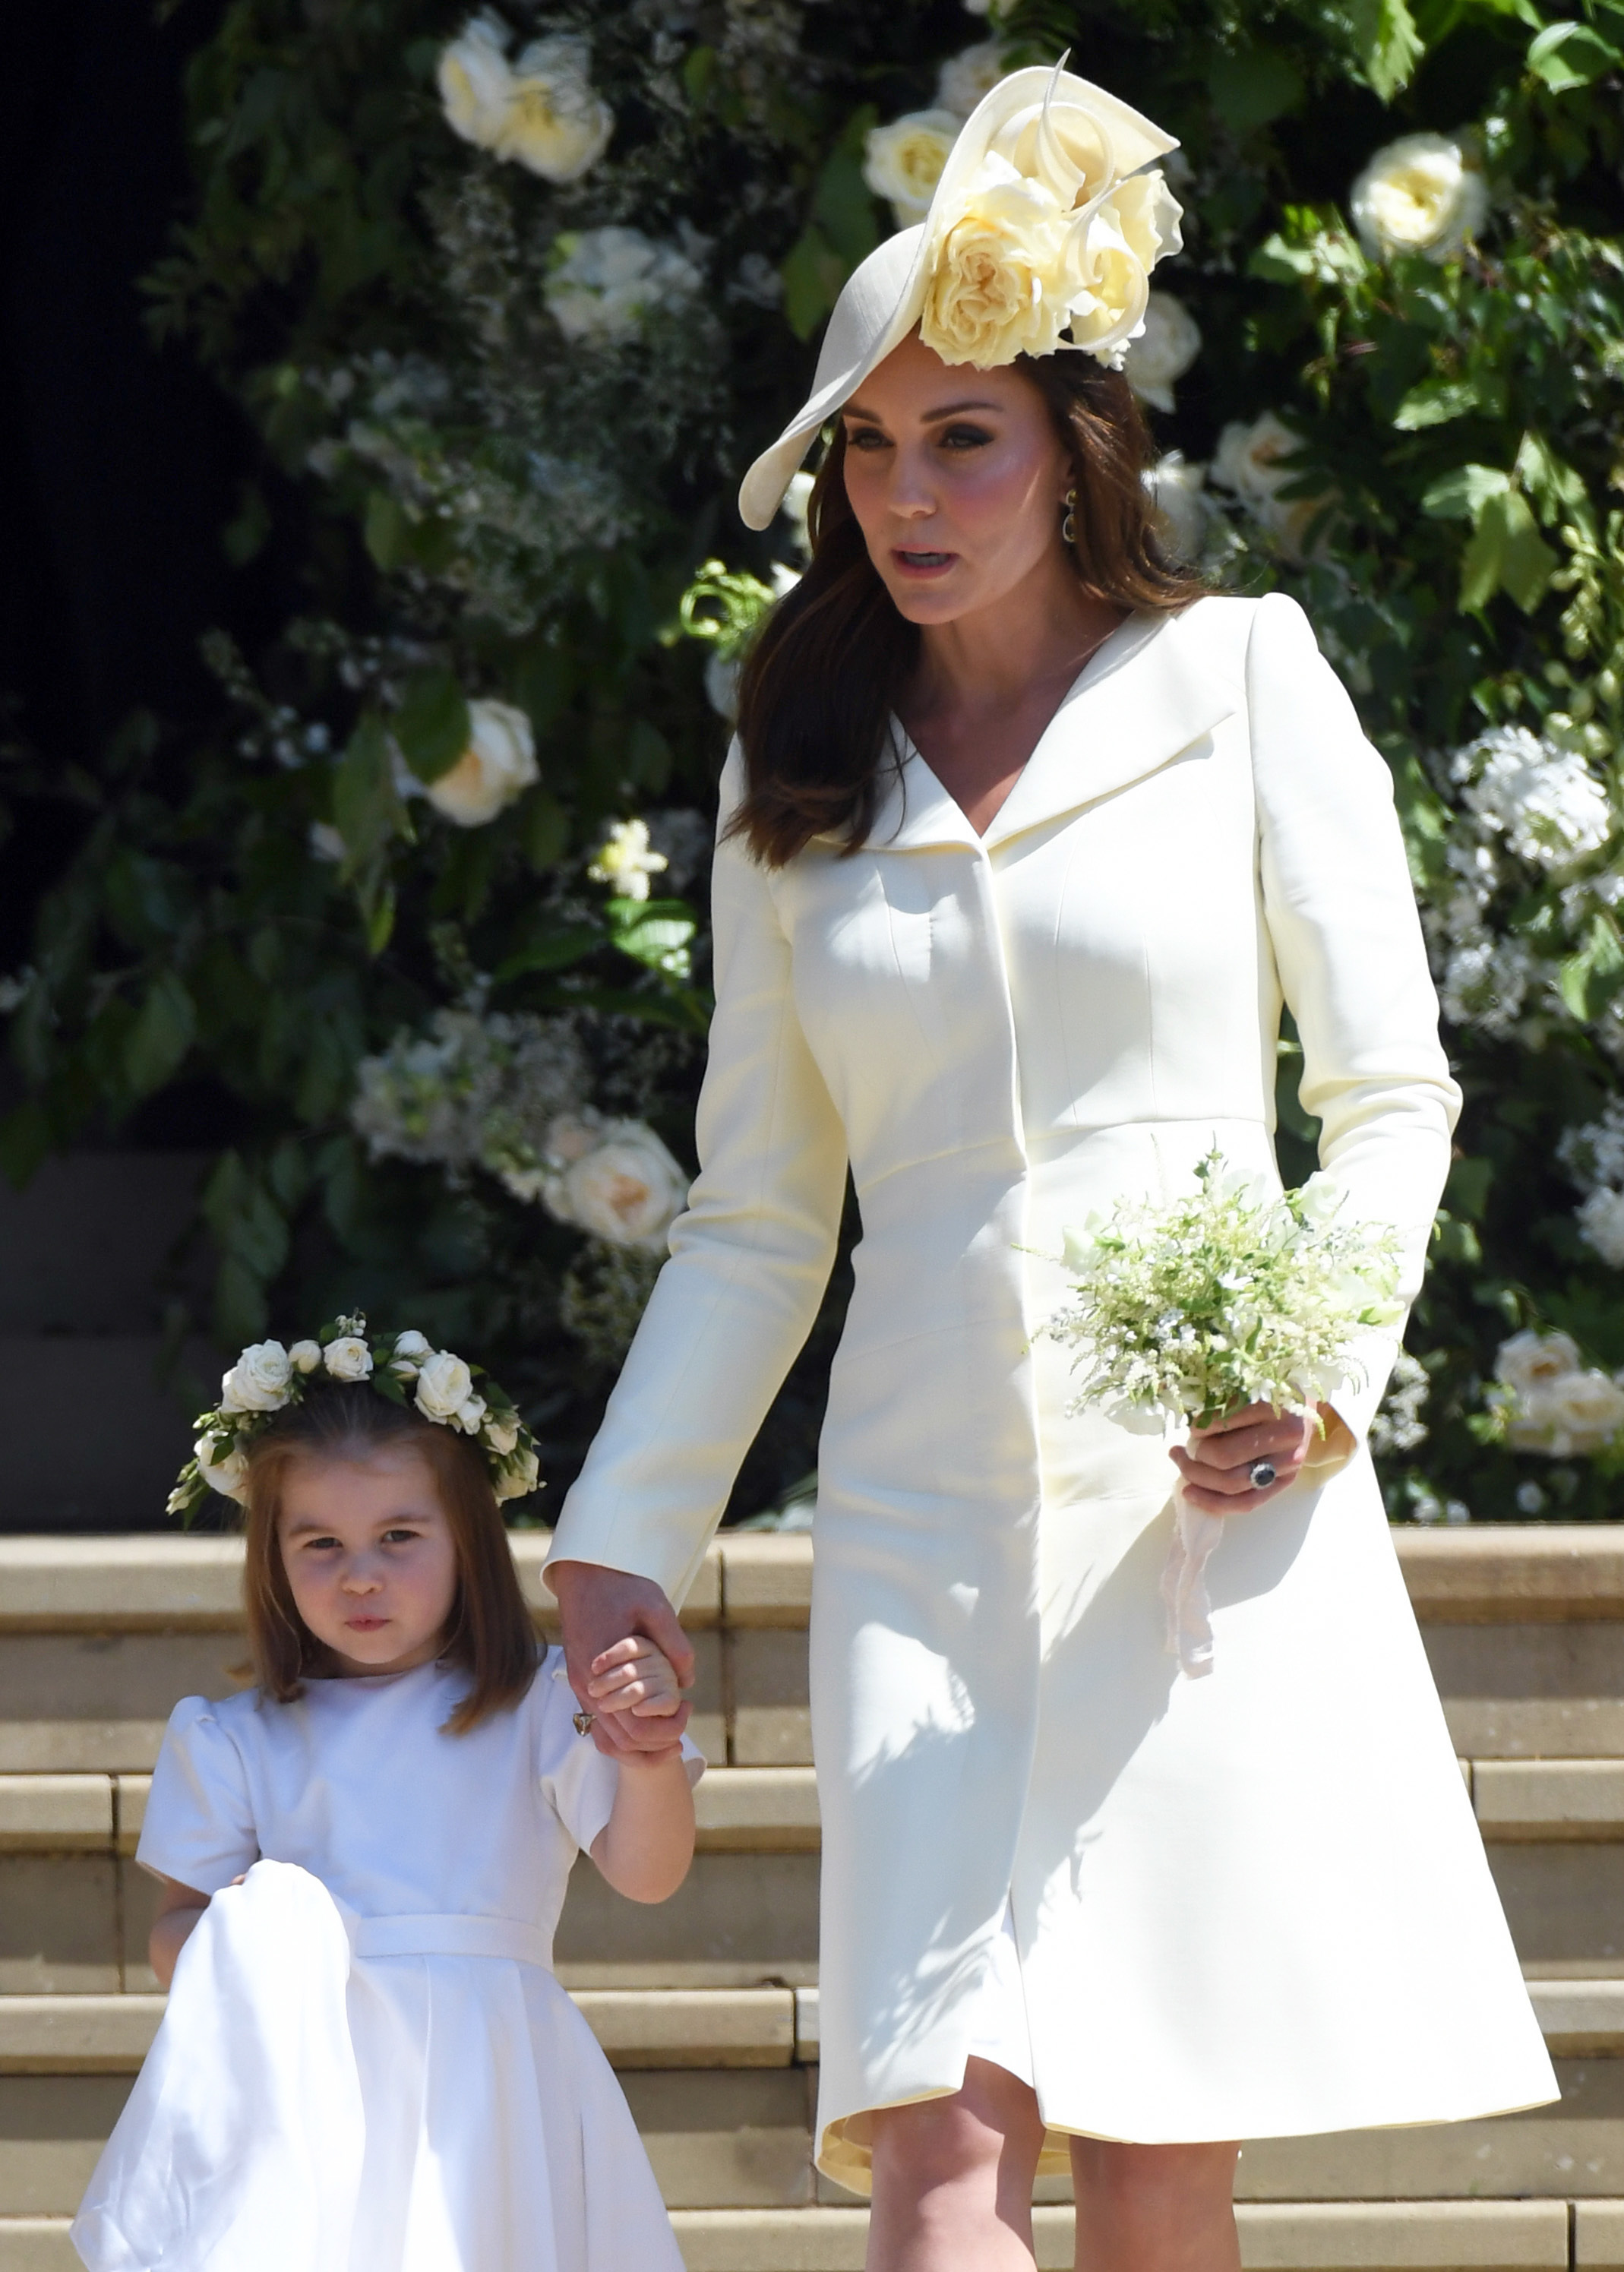 Duchess Kate and Princess Charlotte leave St George's Chapel in Windsor Castle after the royal wedding ceremony on May 19, 2018.